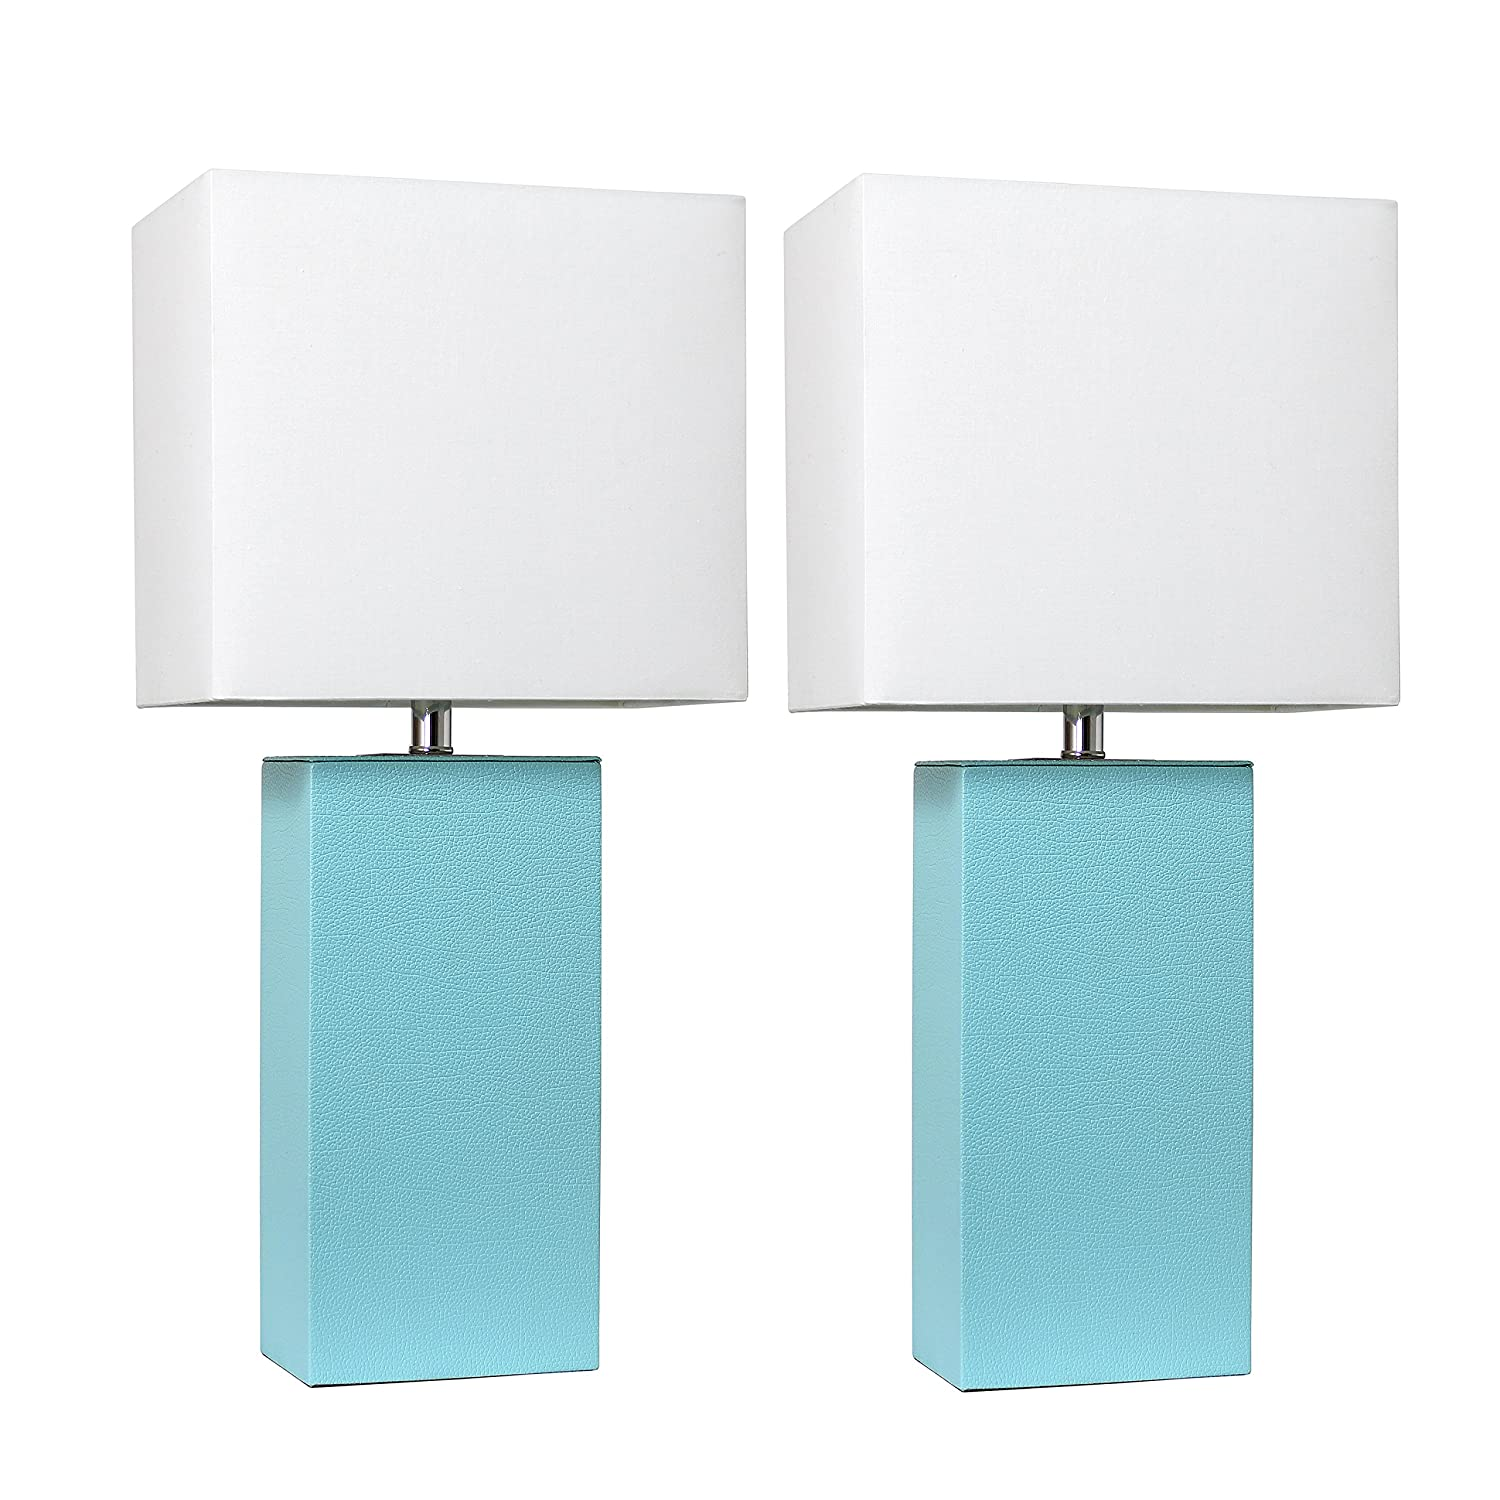 Elegant Designs LC2000-AQU-2PK 2 Pack Modern Leather Table Lamps with White Fabric Shades, Aqua